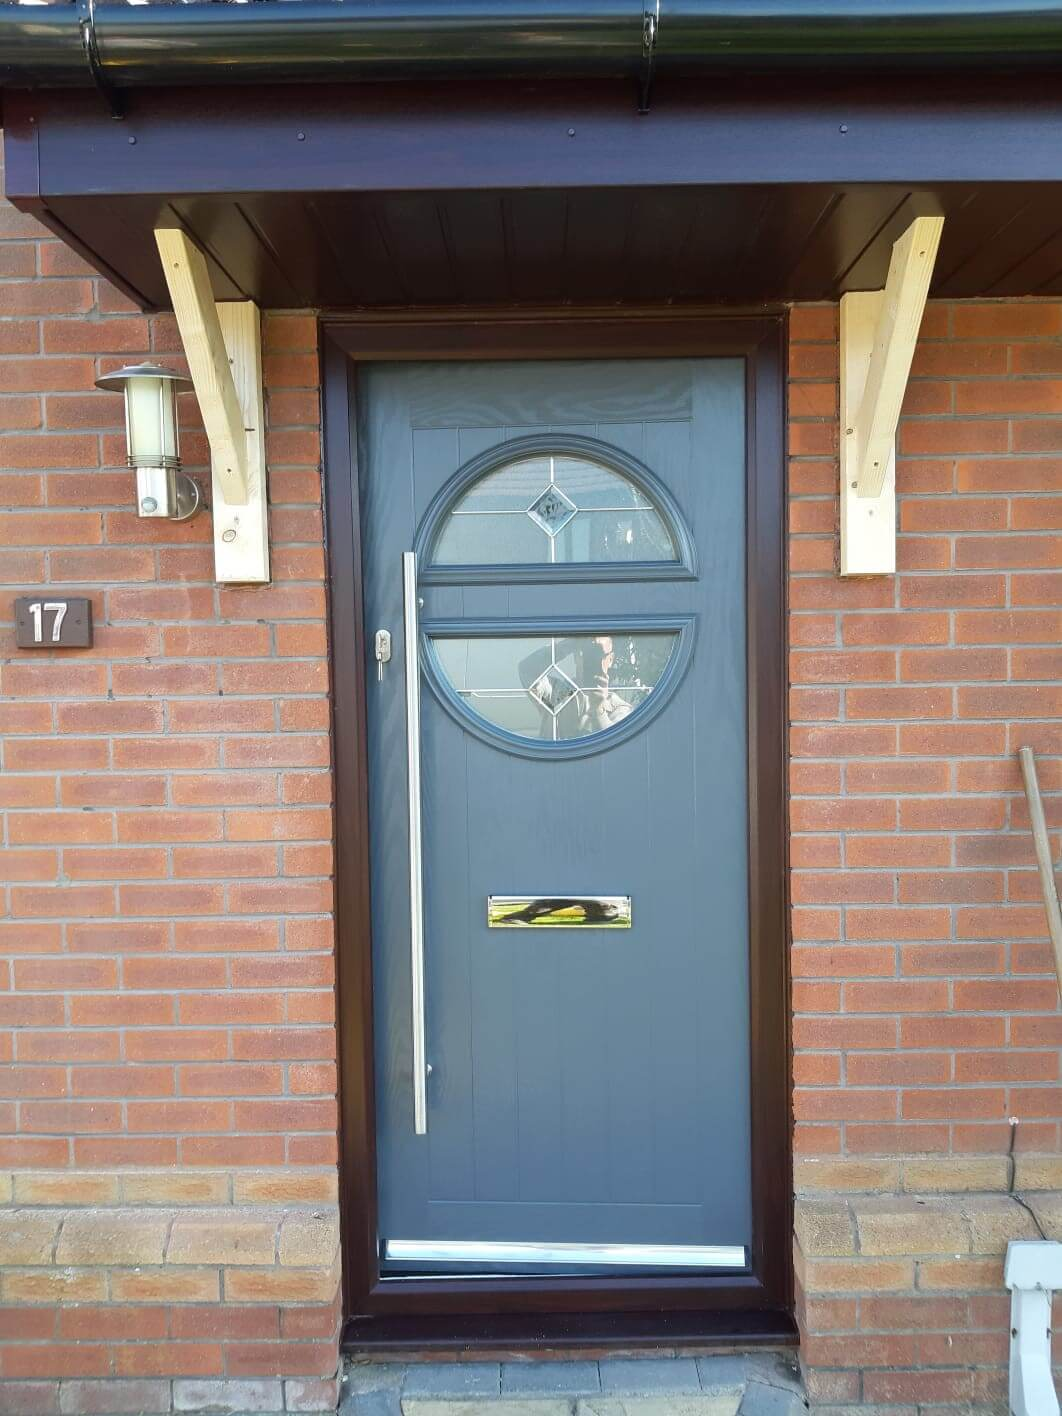 This image shows a composite door with a long pull handle in stalled by Celsius Home Improvements for customers in Liverpool.